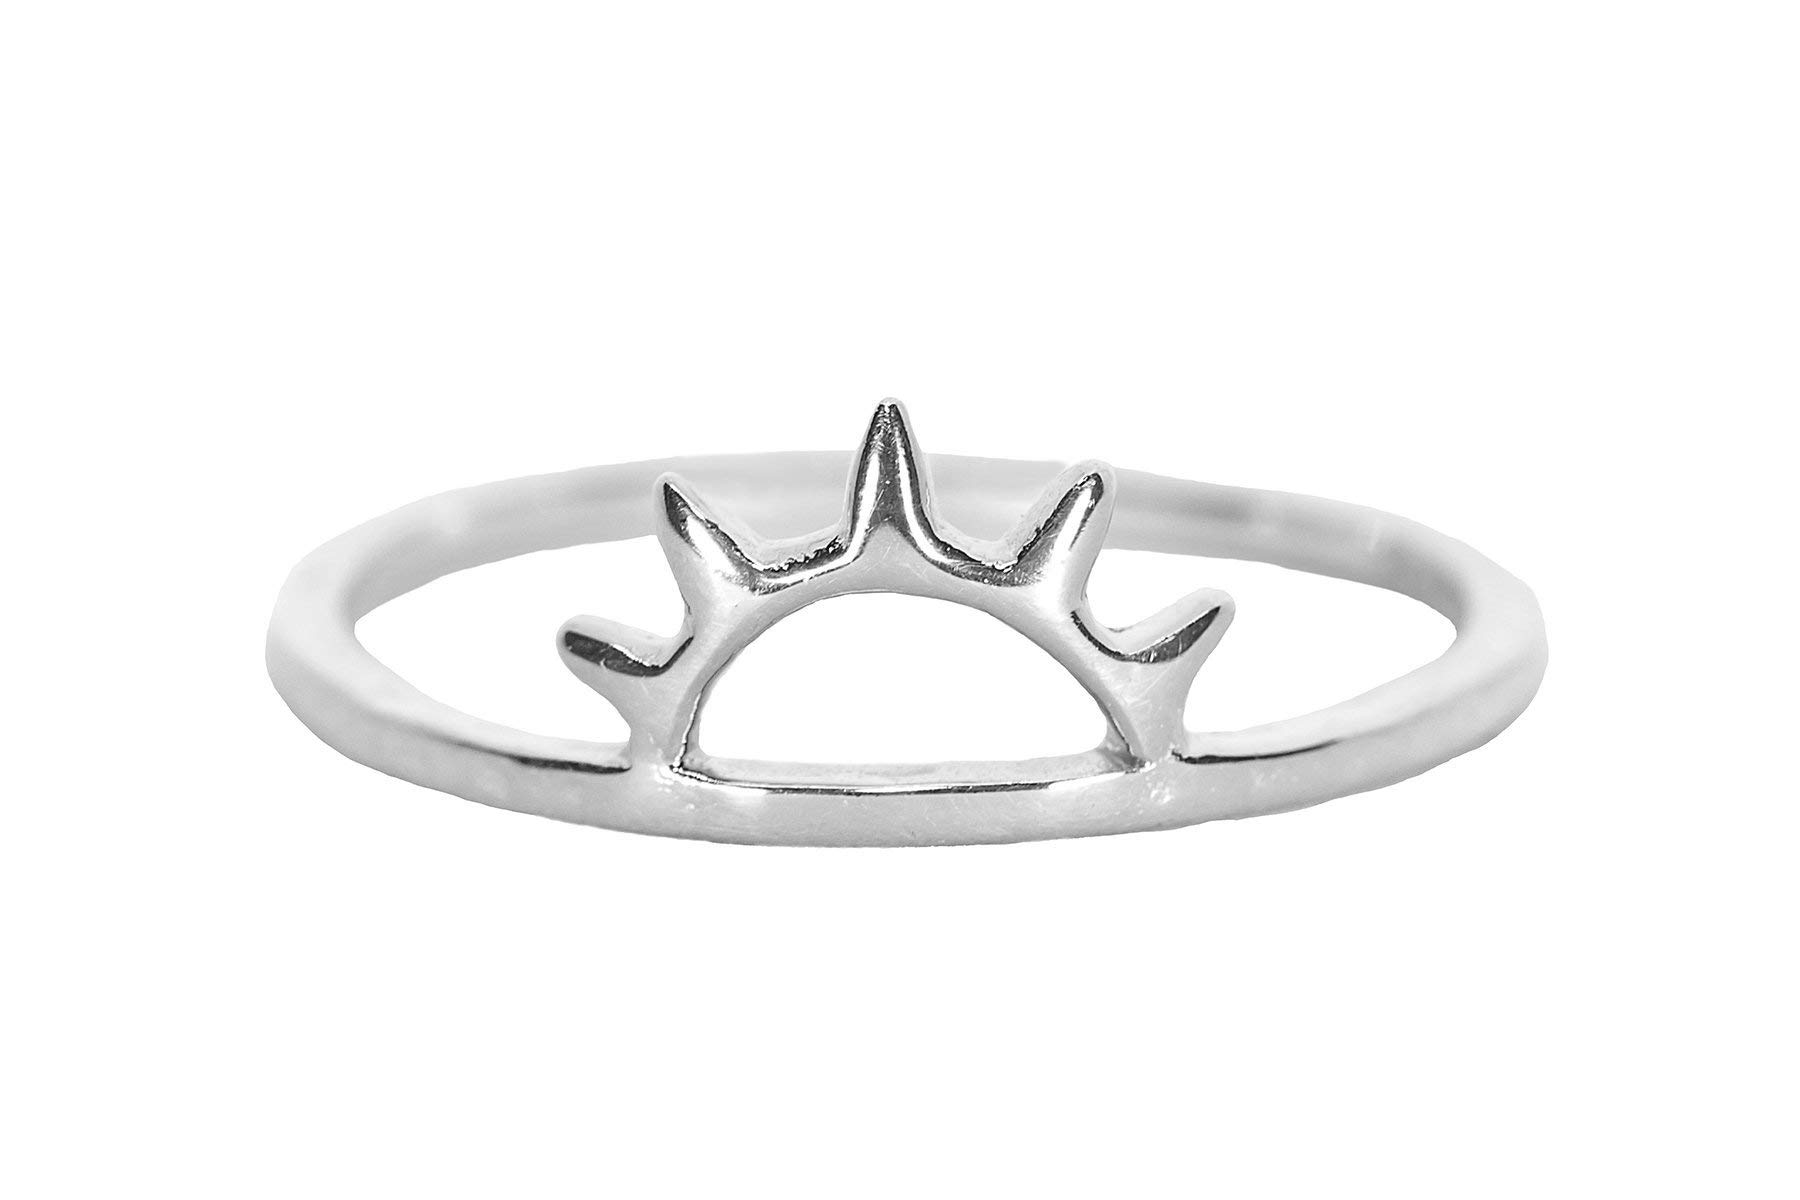 Pura Vida Sunset Silver Plated Ring - Half Sun Design.925 Sterling Silver Band - Size 6 by Pura Vida (Image #1)